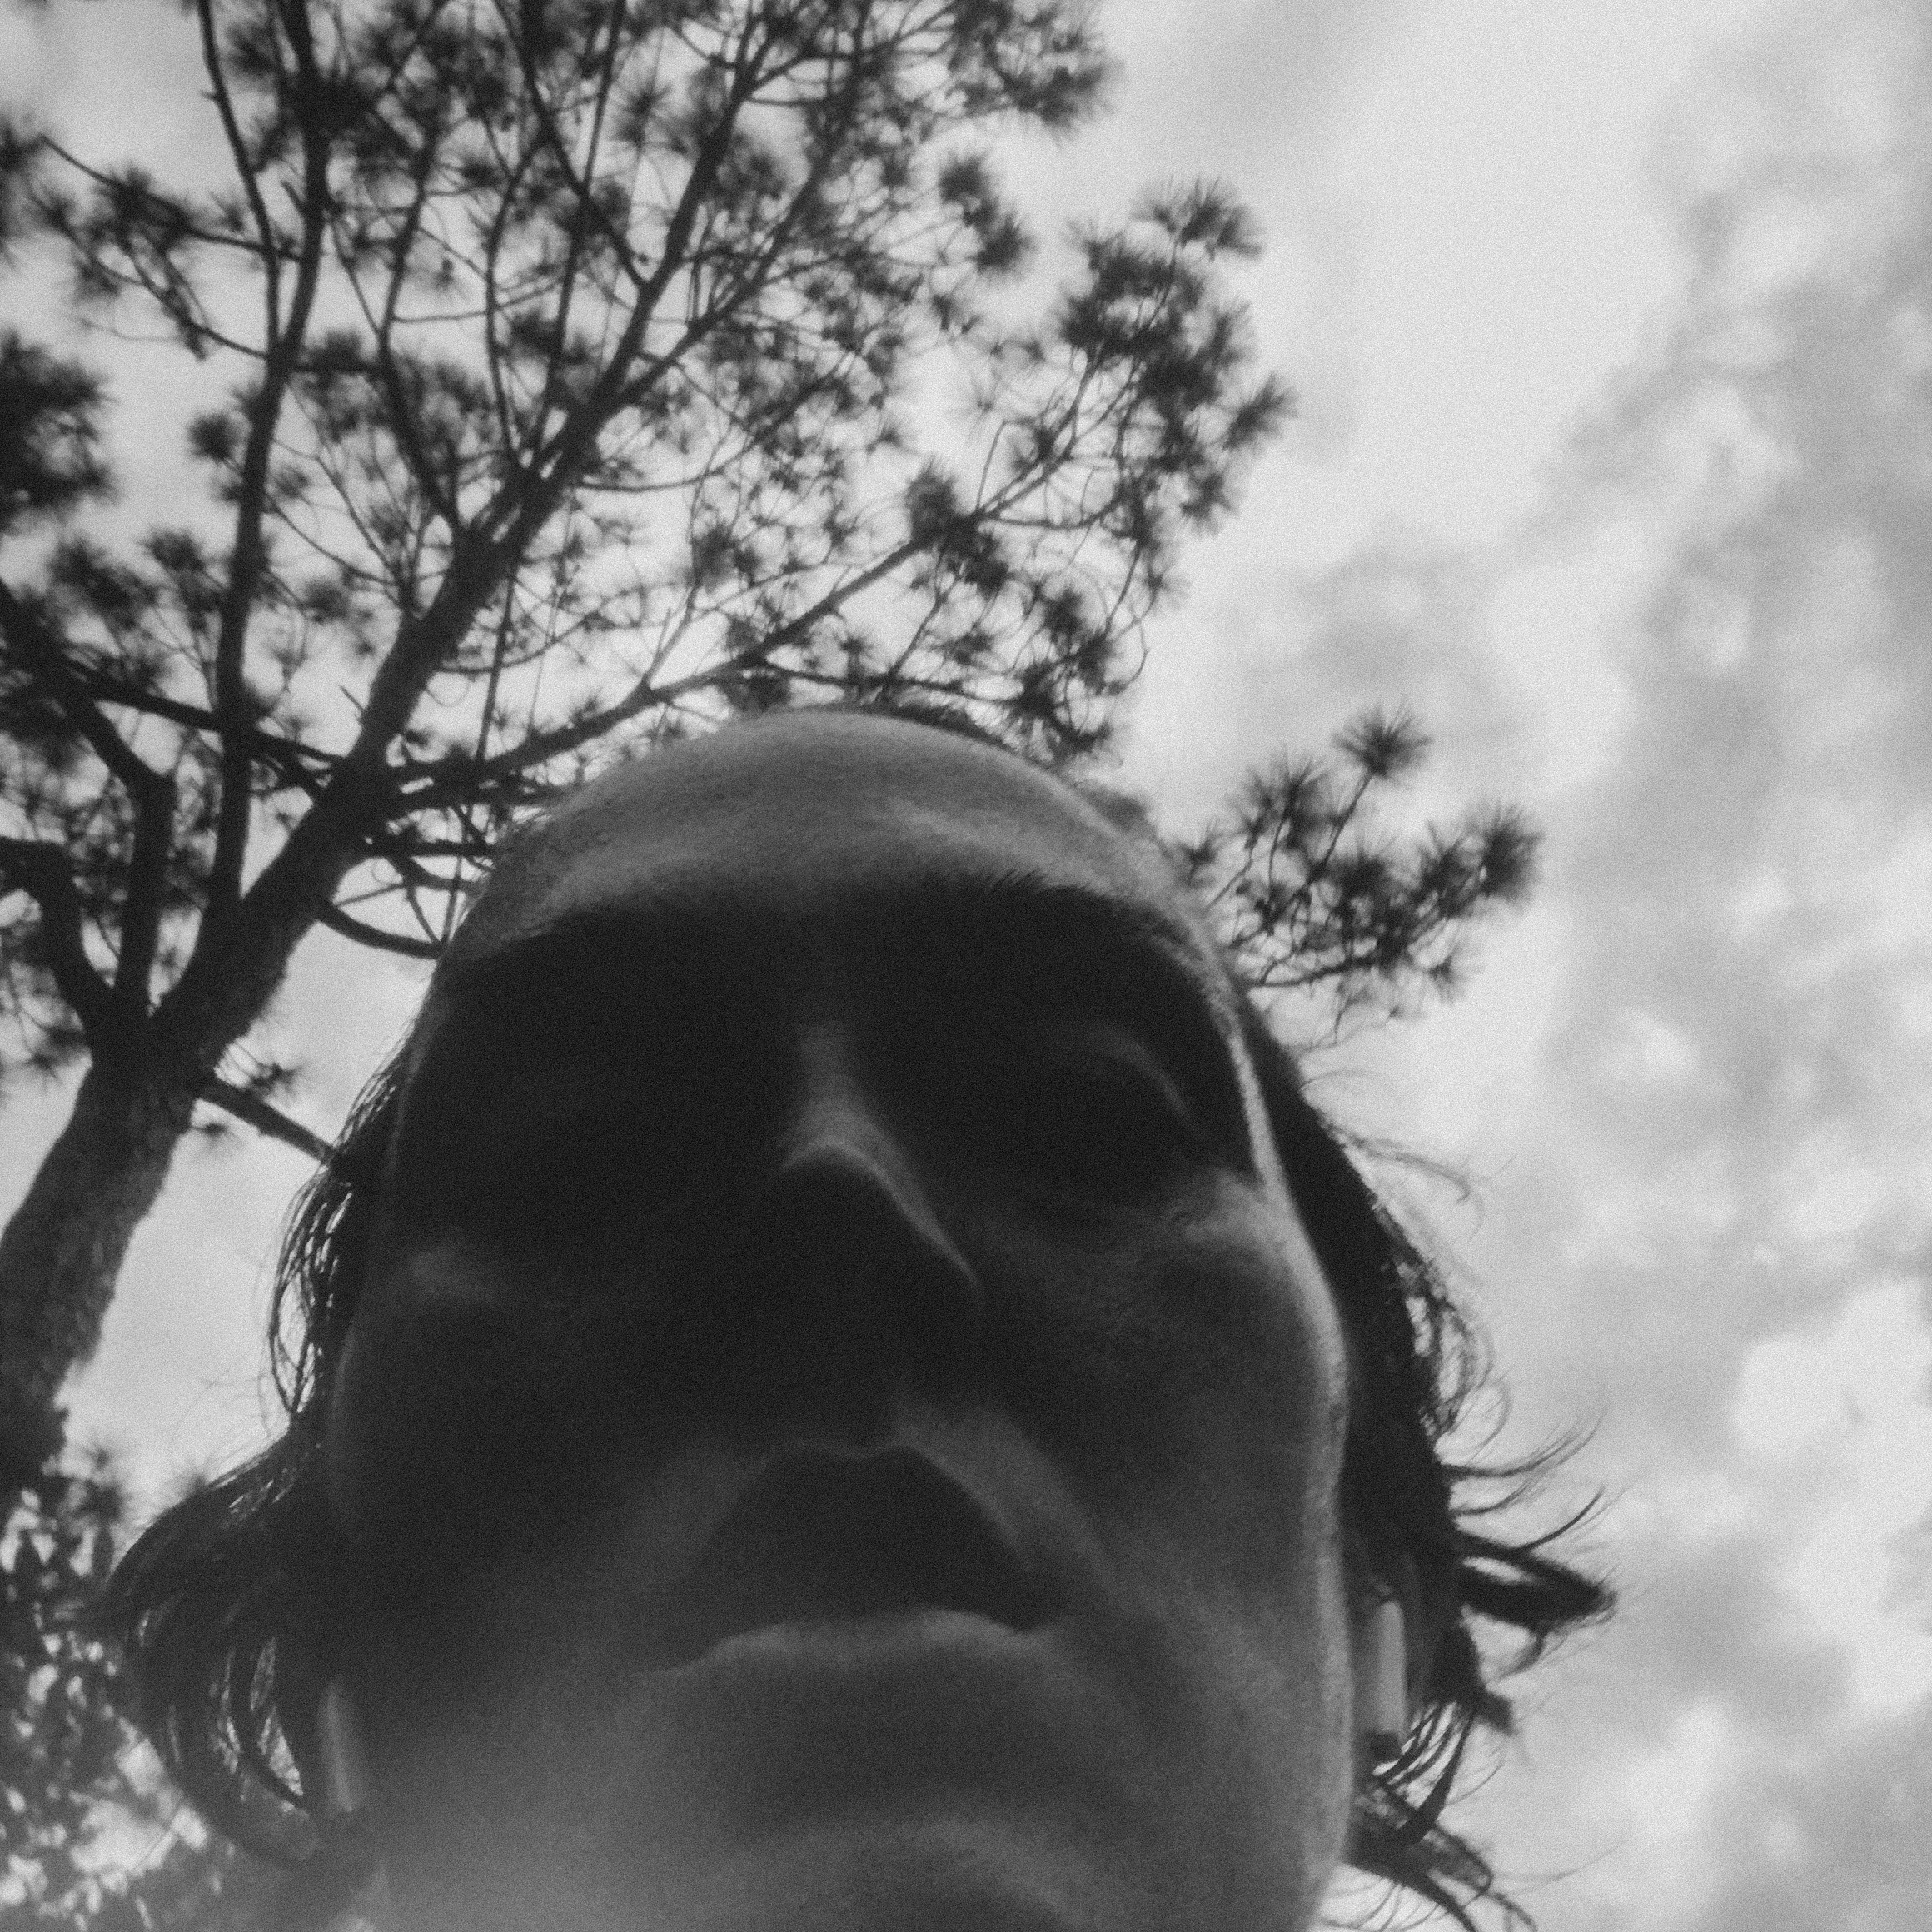 Black and white self-portrait, looking up, dark shadows on my face. A bit sweaty and serious as I've been running.